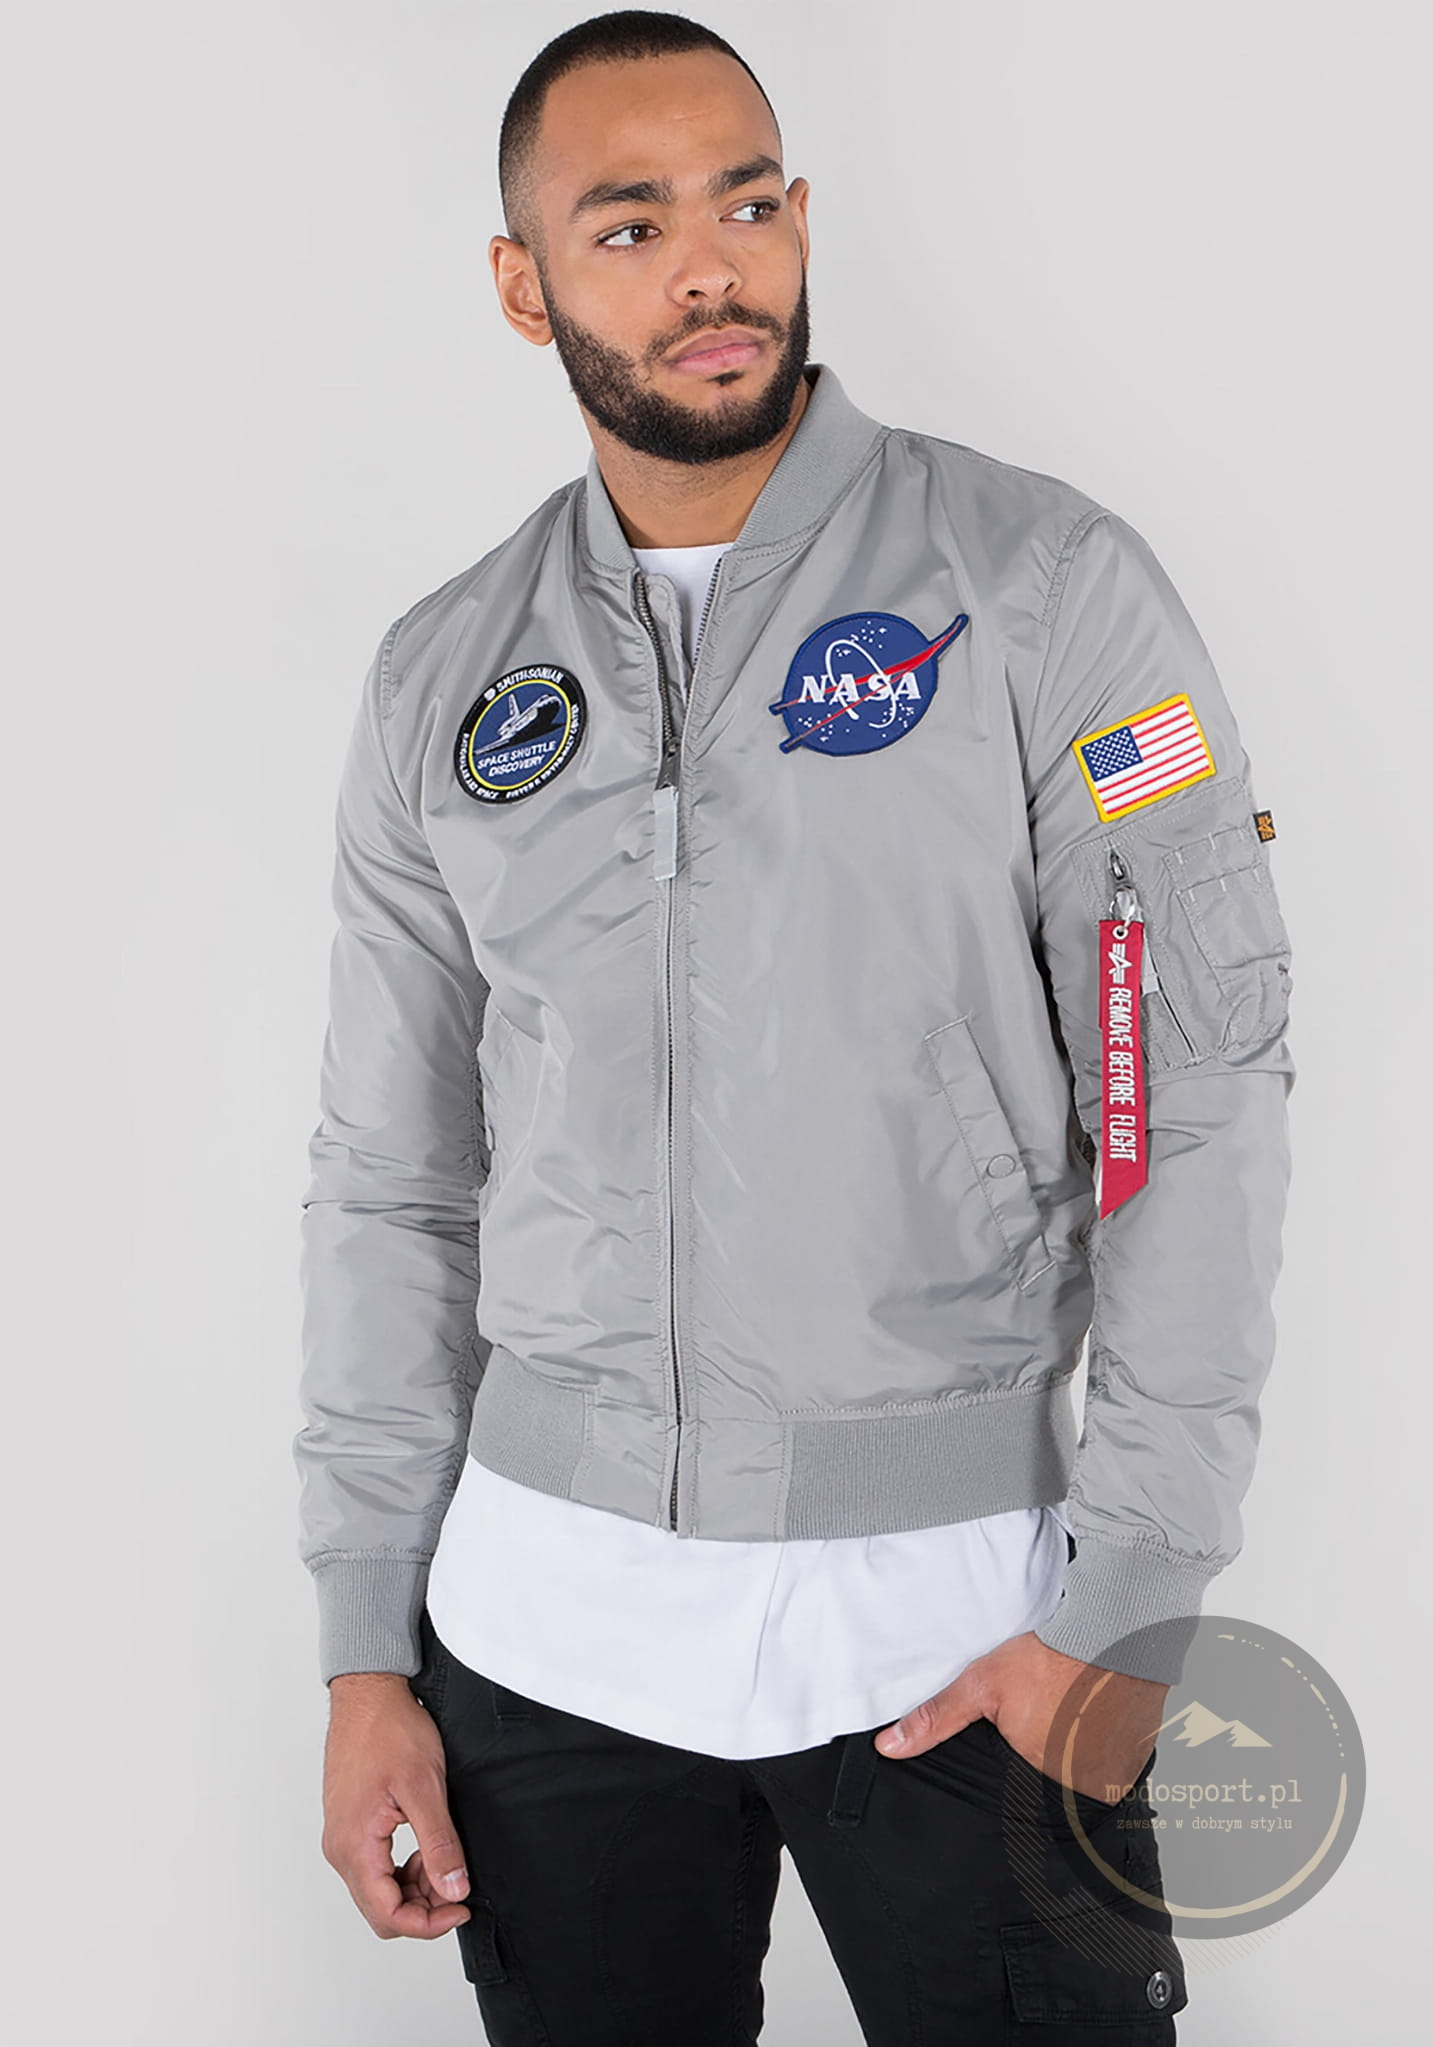 186101-31-alpha-industries-ma-1-tt-nasa-reversible-II-flight-jacket-003.jpg